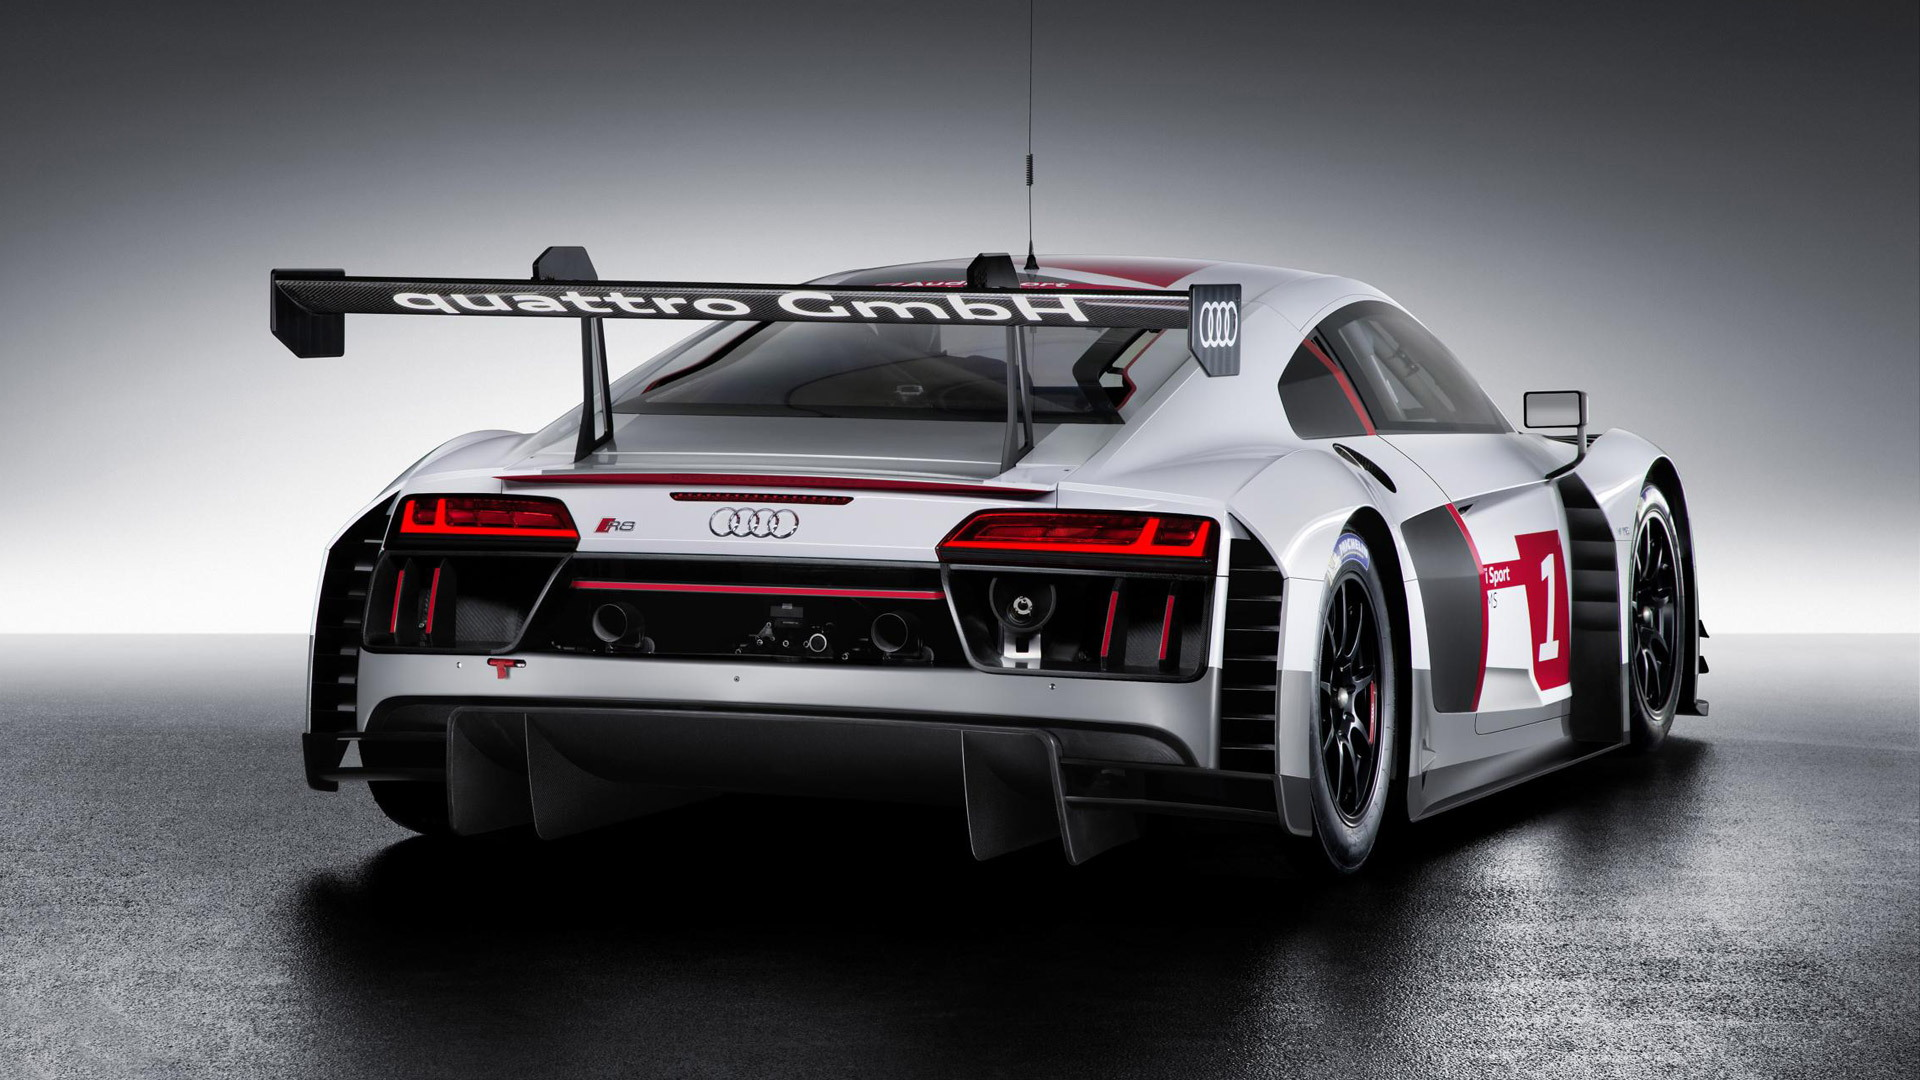 2016 Audi R8 LMS race car